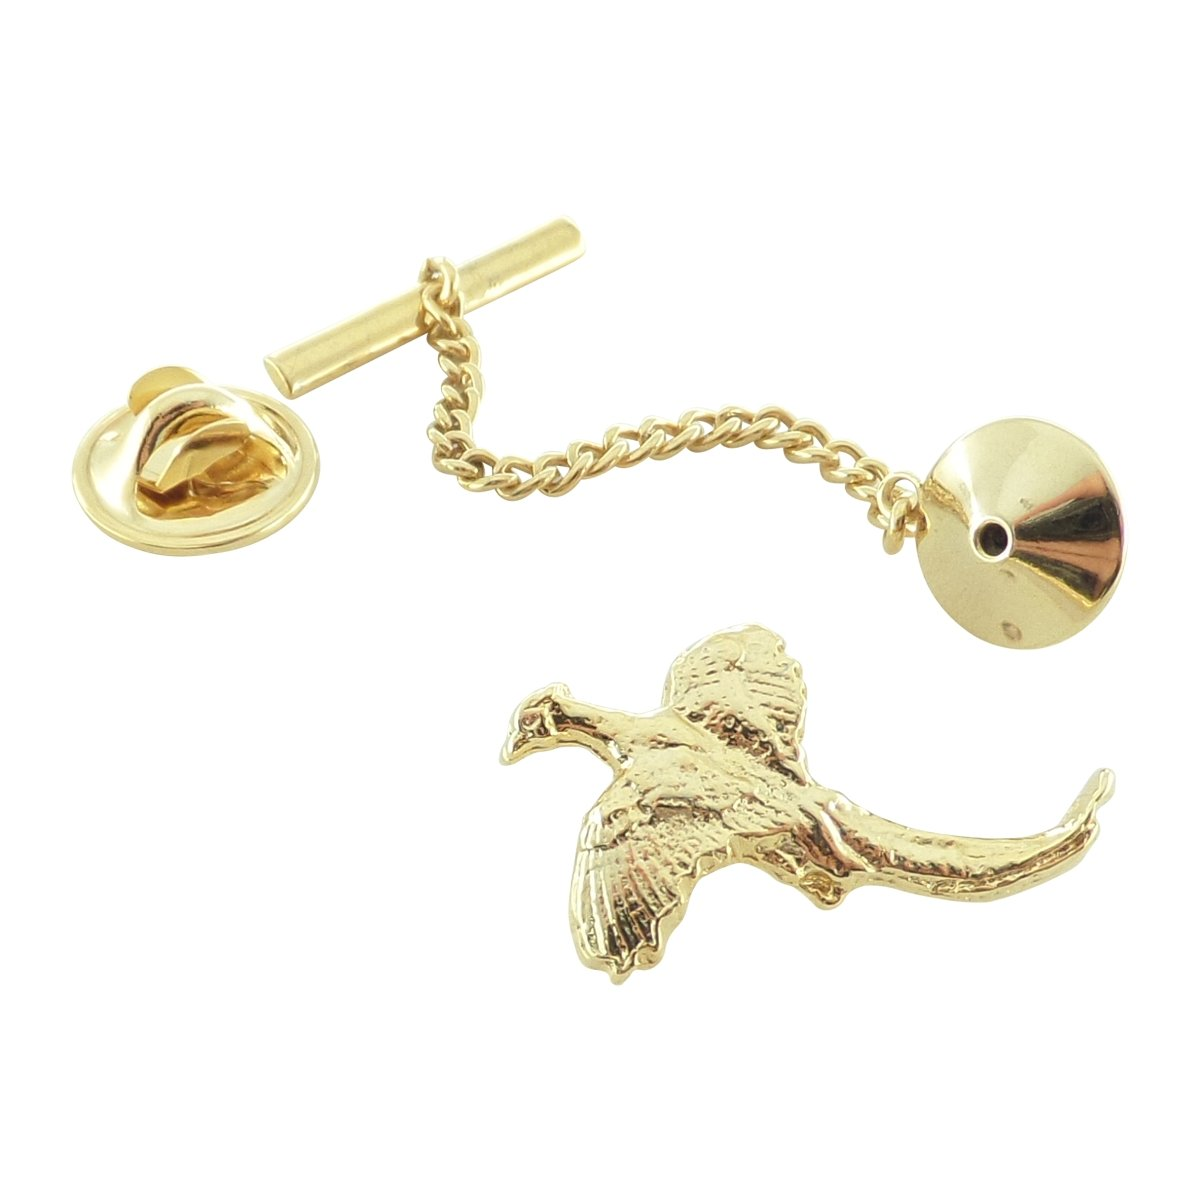 Creative Pewter Designs, Pewter Pheasant Tie Tack, Gold Plated, BG022TT